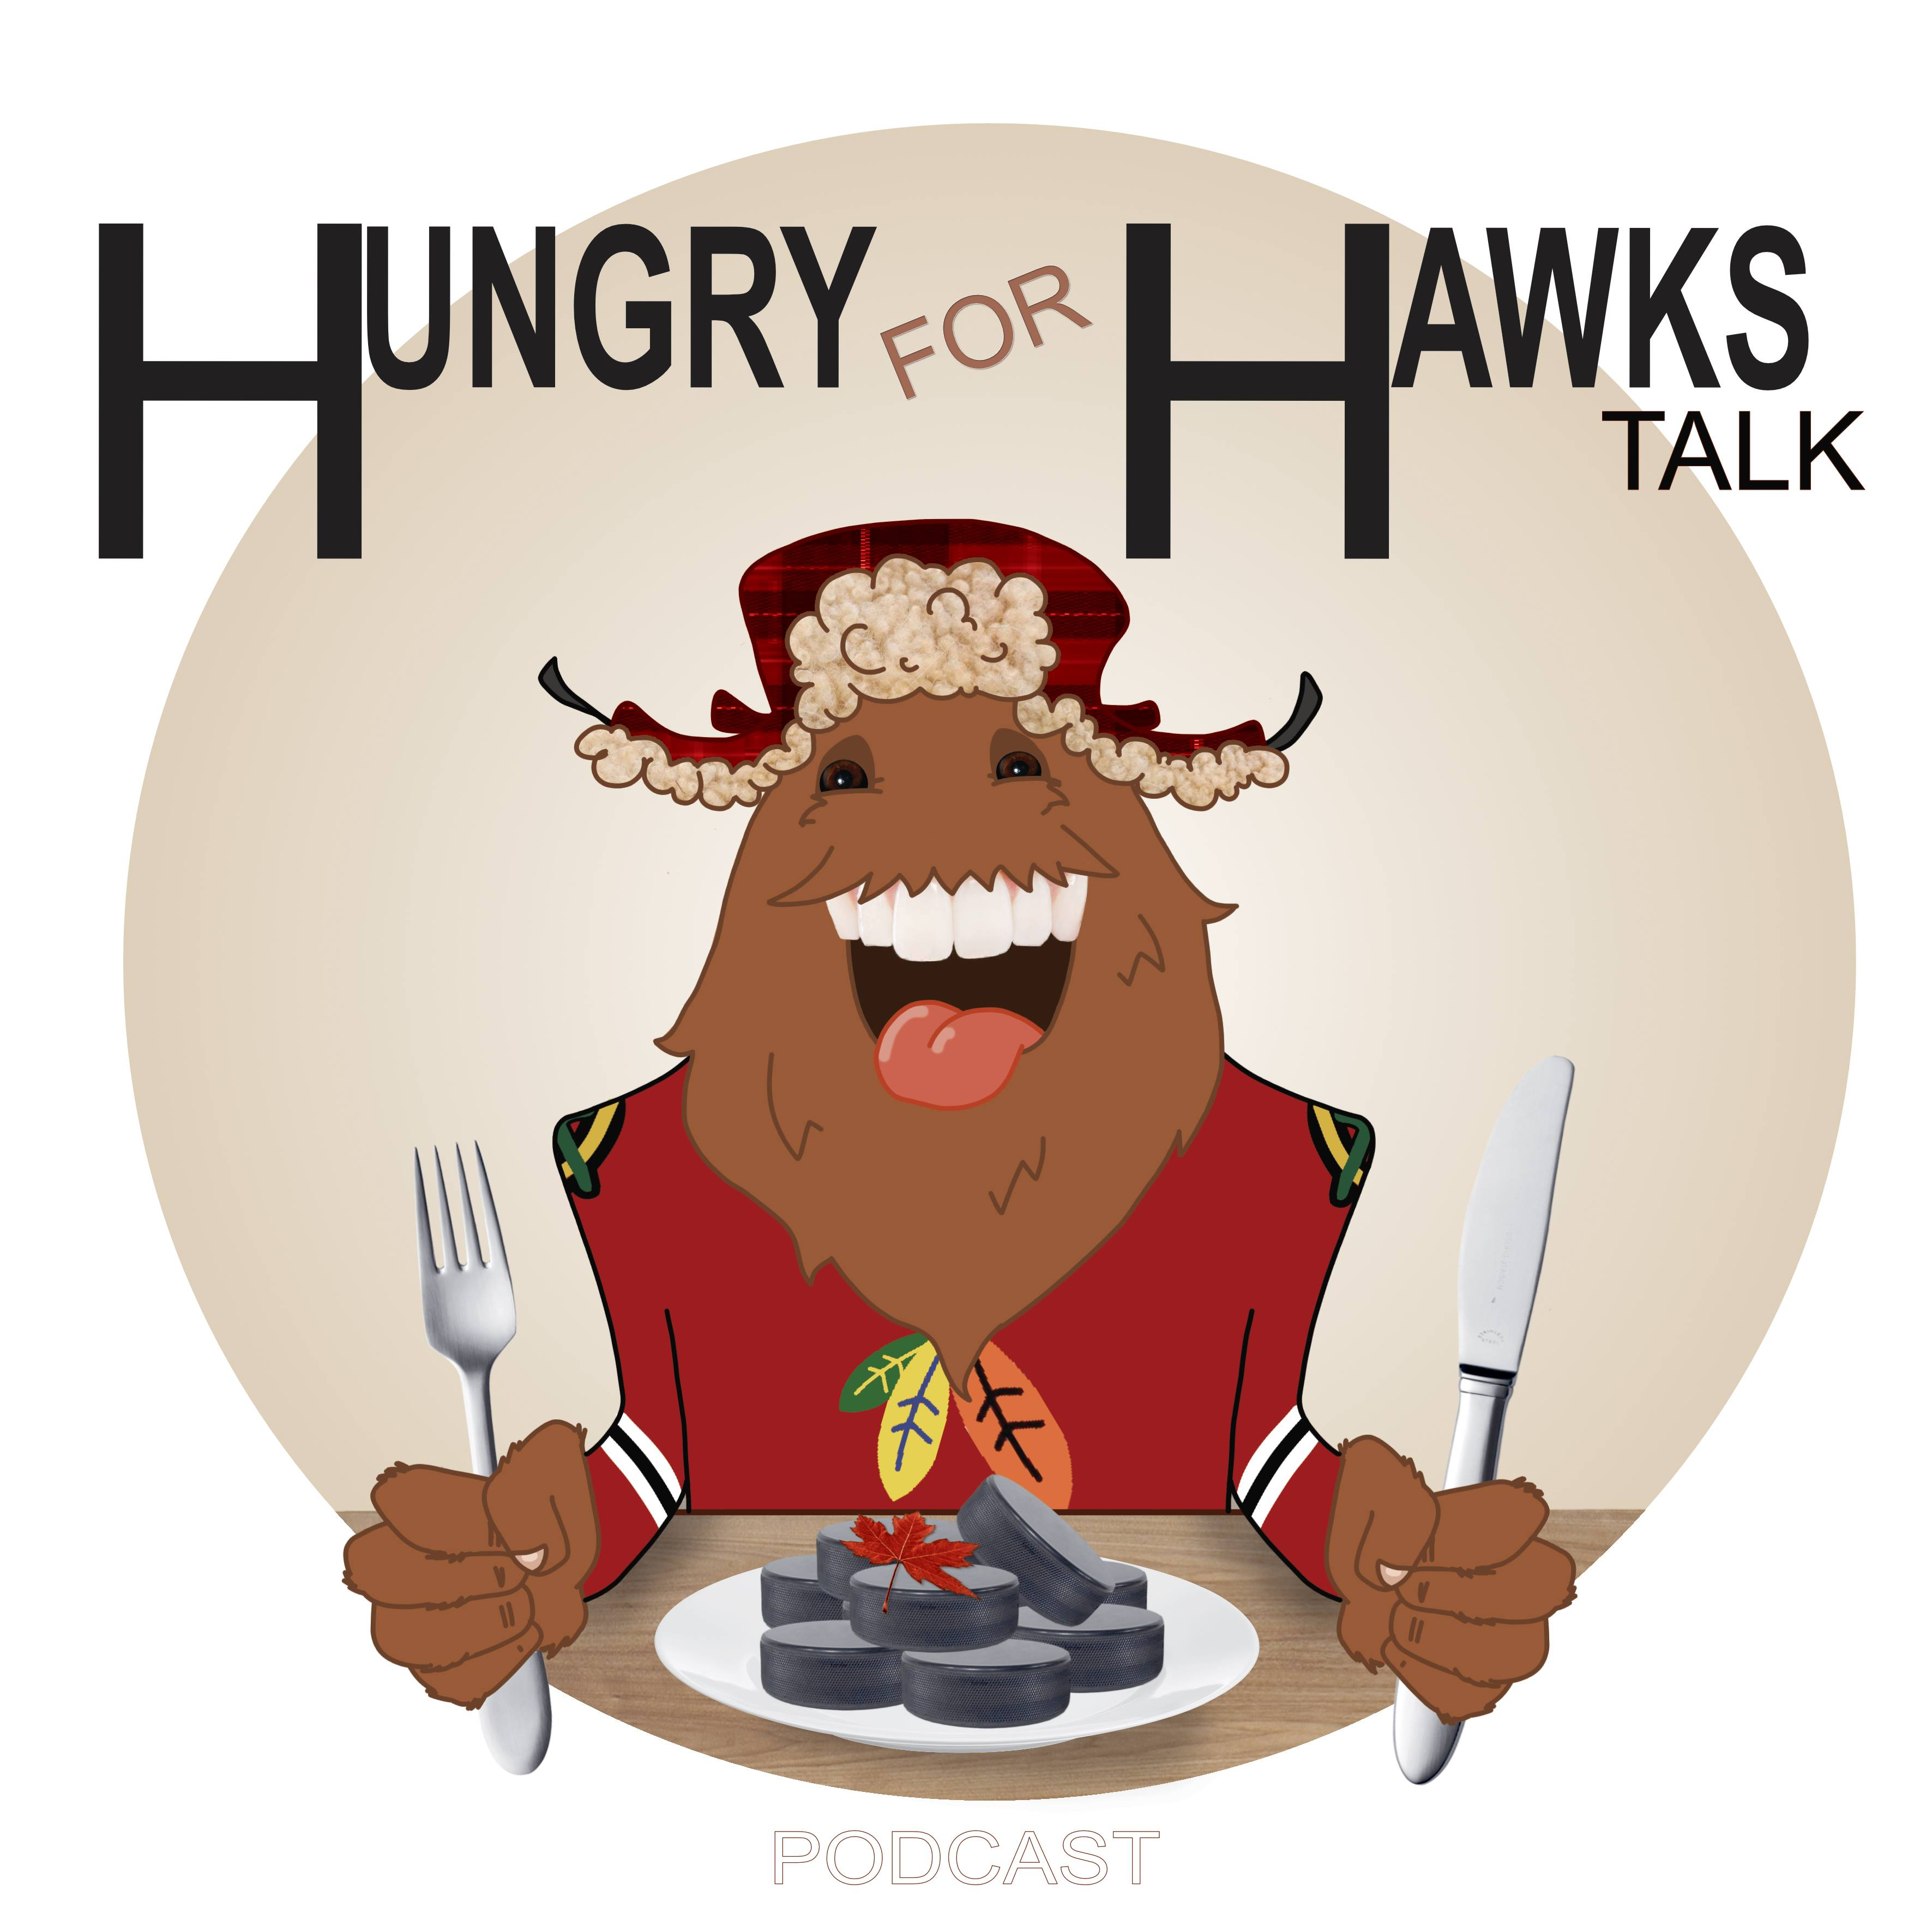 Chicago Blackhawks - Hungry For Hawks Talk - EP60 - S1 Featuring Jonny B